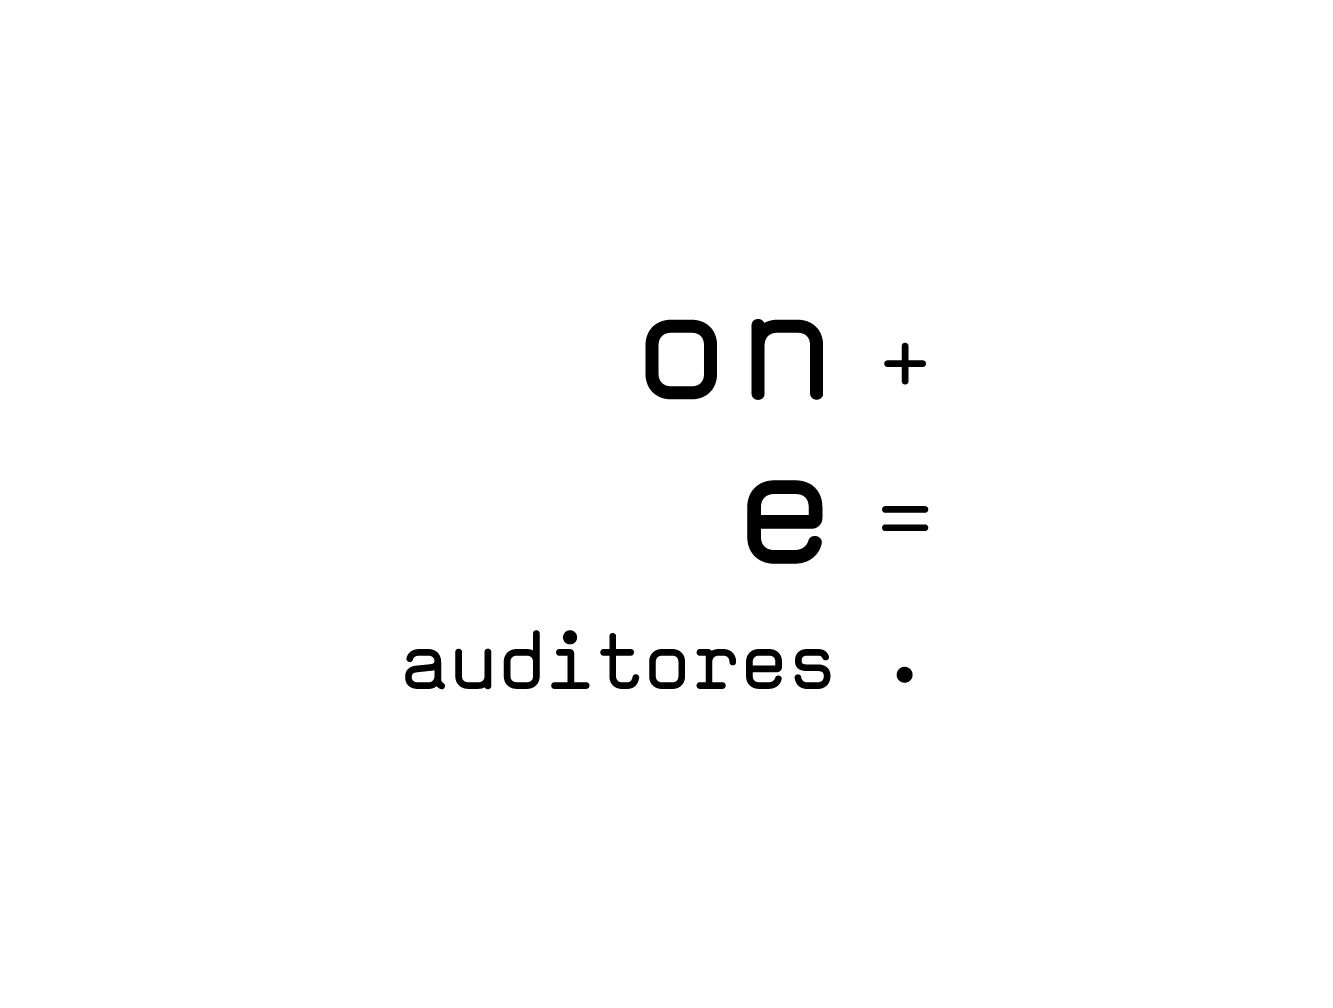 One Auditores